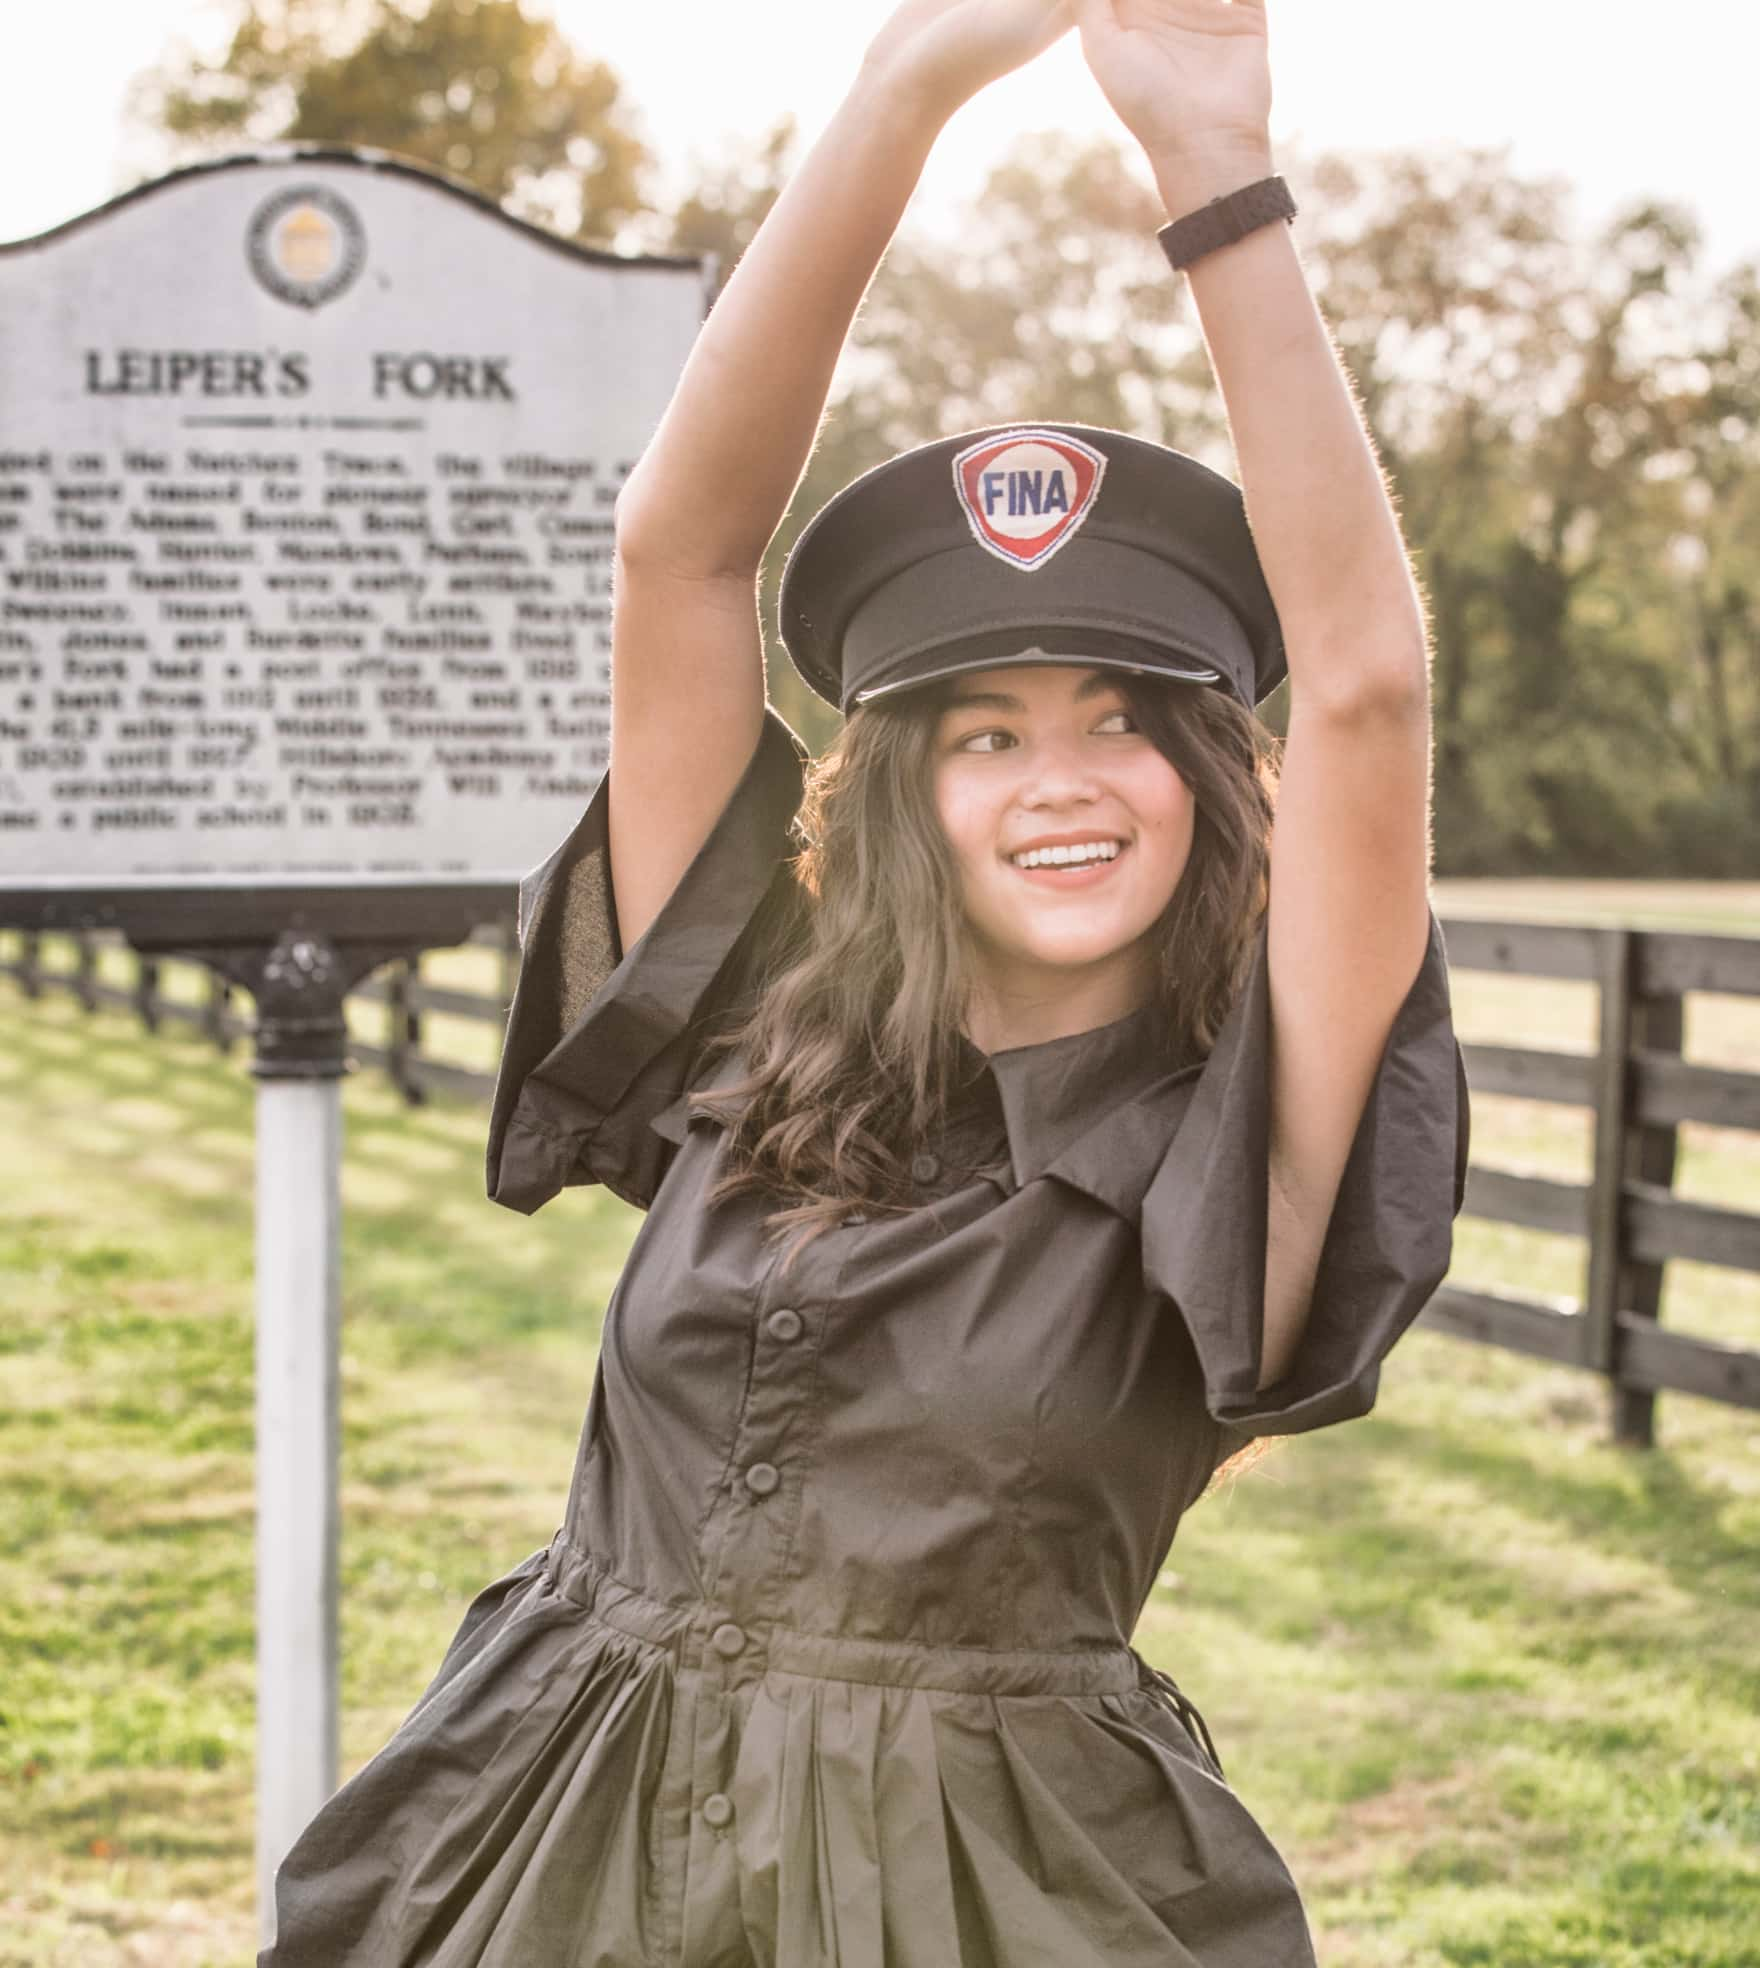 Stylish young woman standing in front of Leiper's Fork, Tennessee sign wearing a black MICHELE watch.